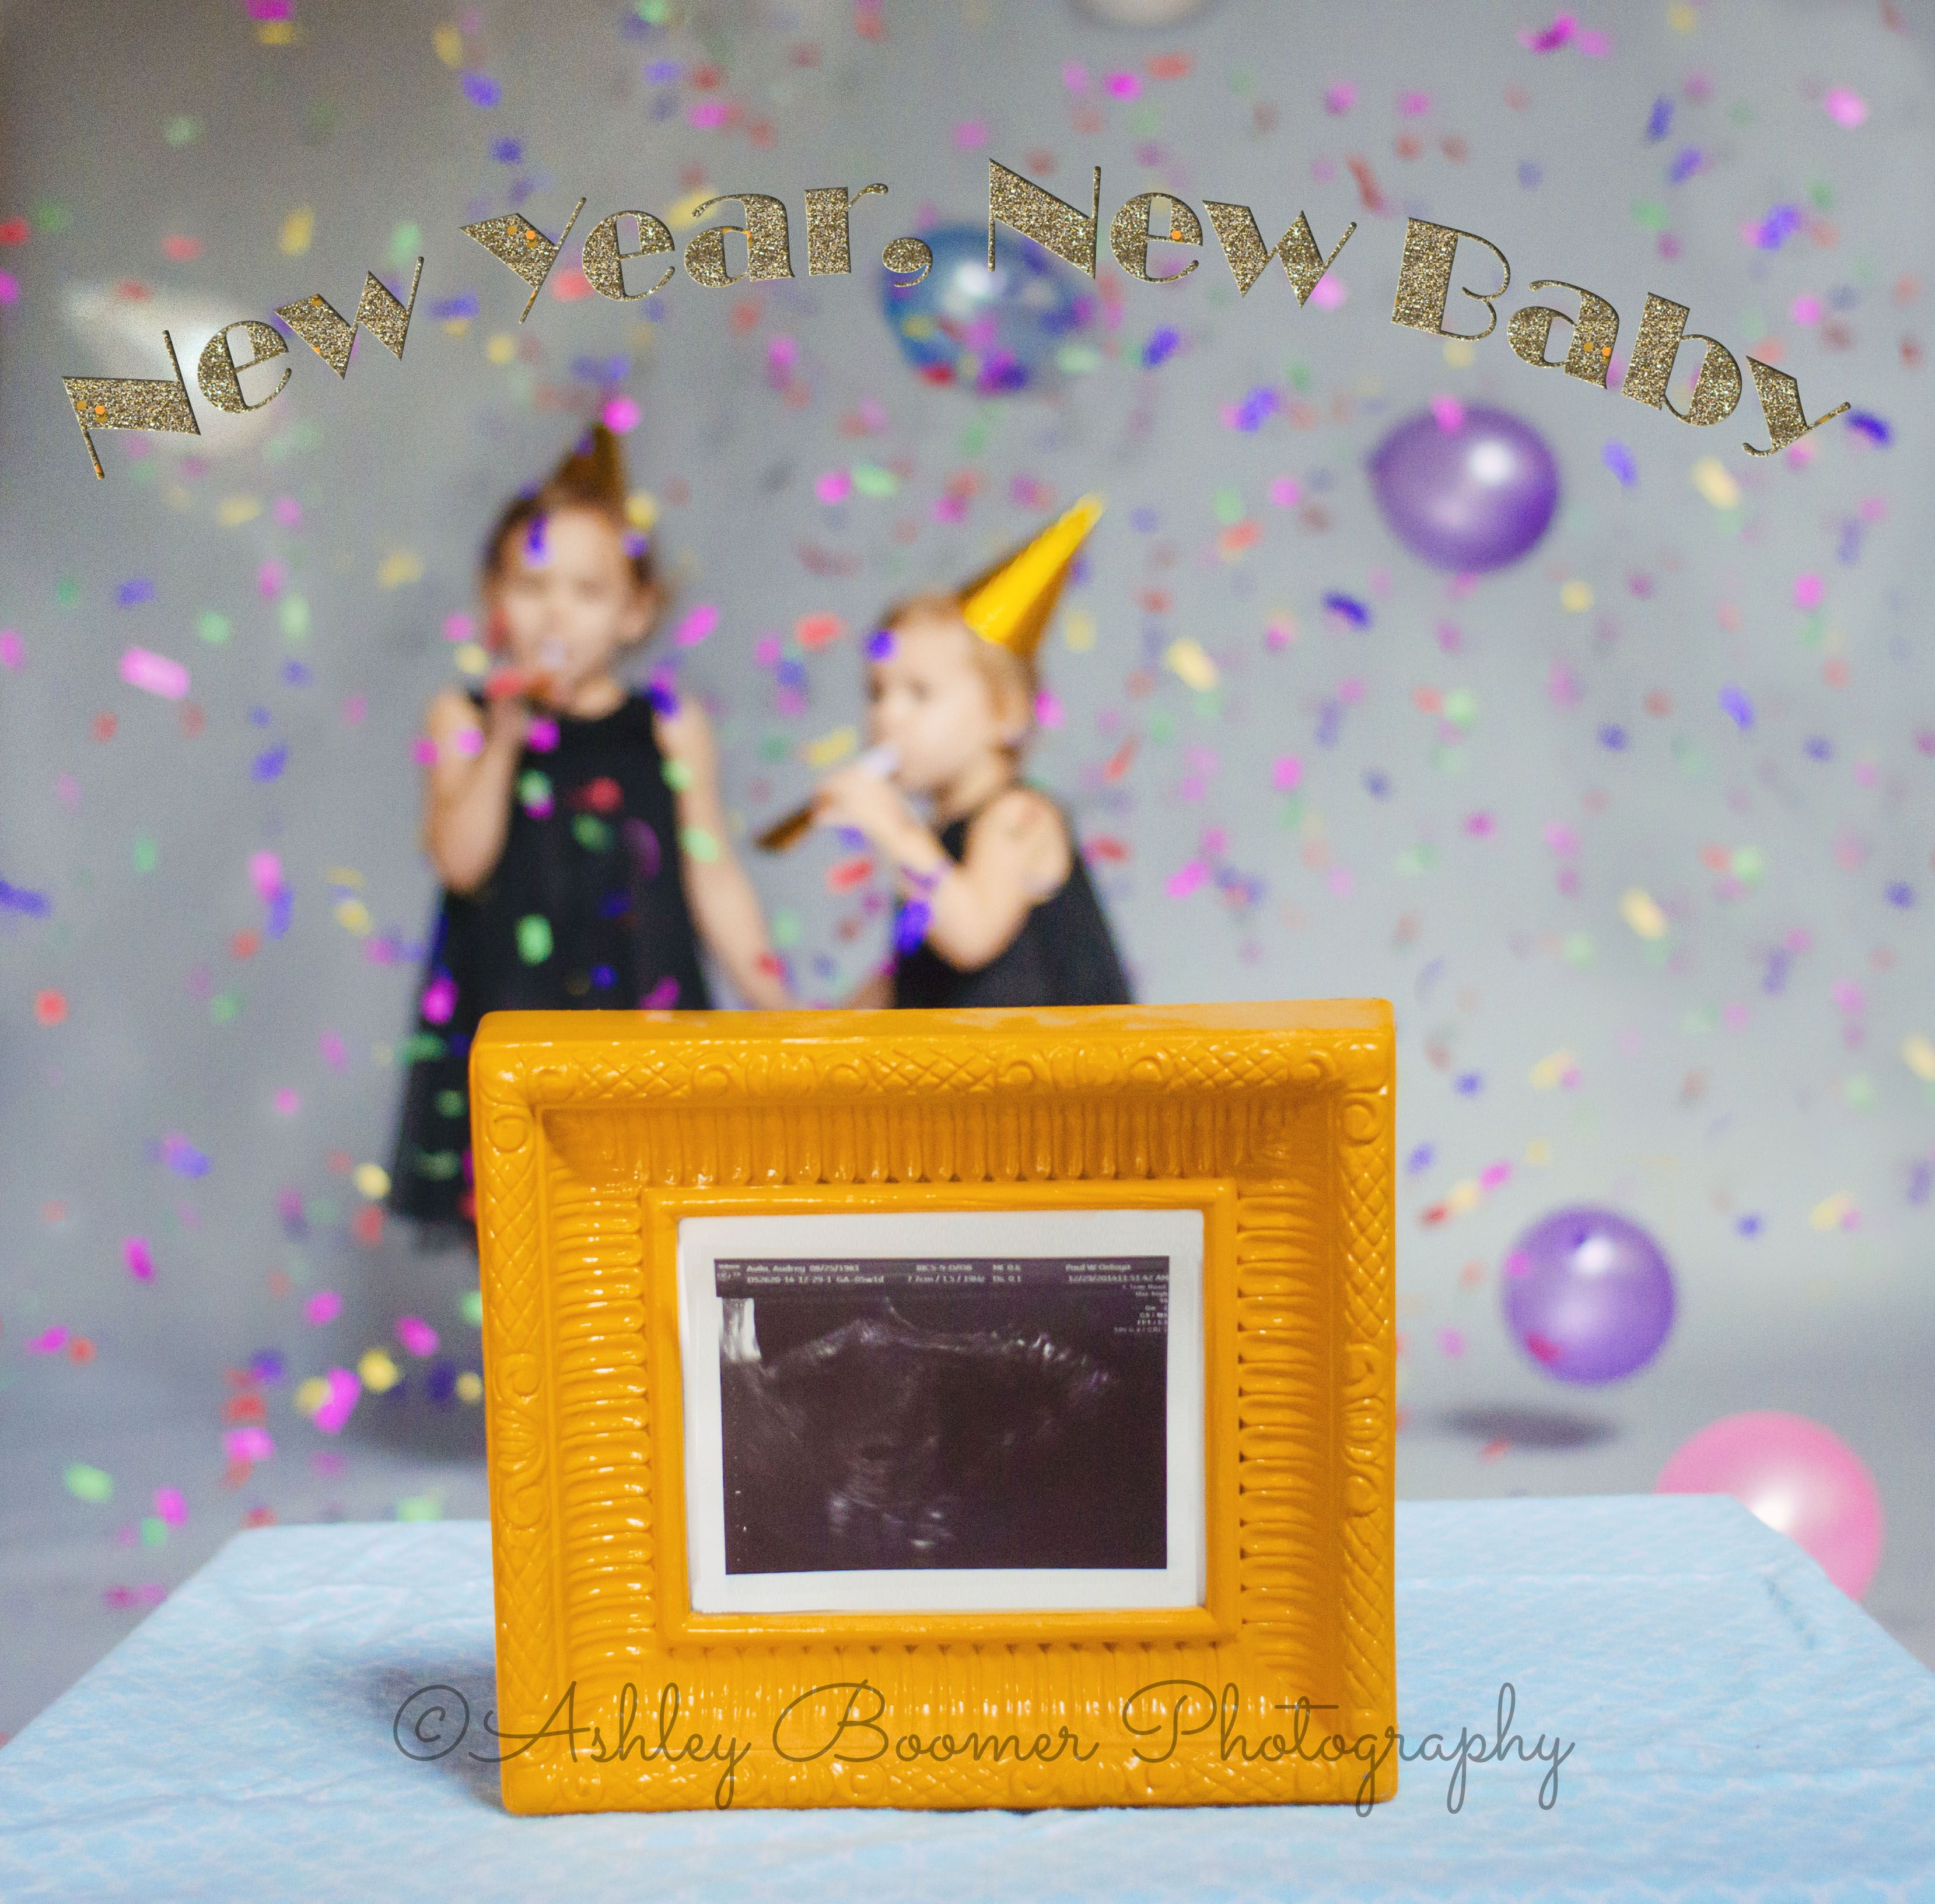 New Years pregnancy announcement with siblingssisters – Baby Announcement Party